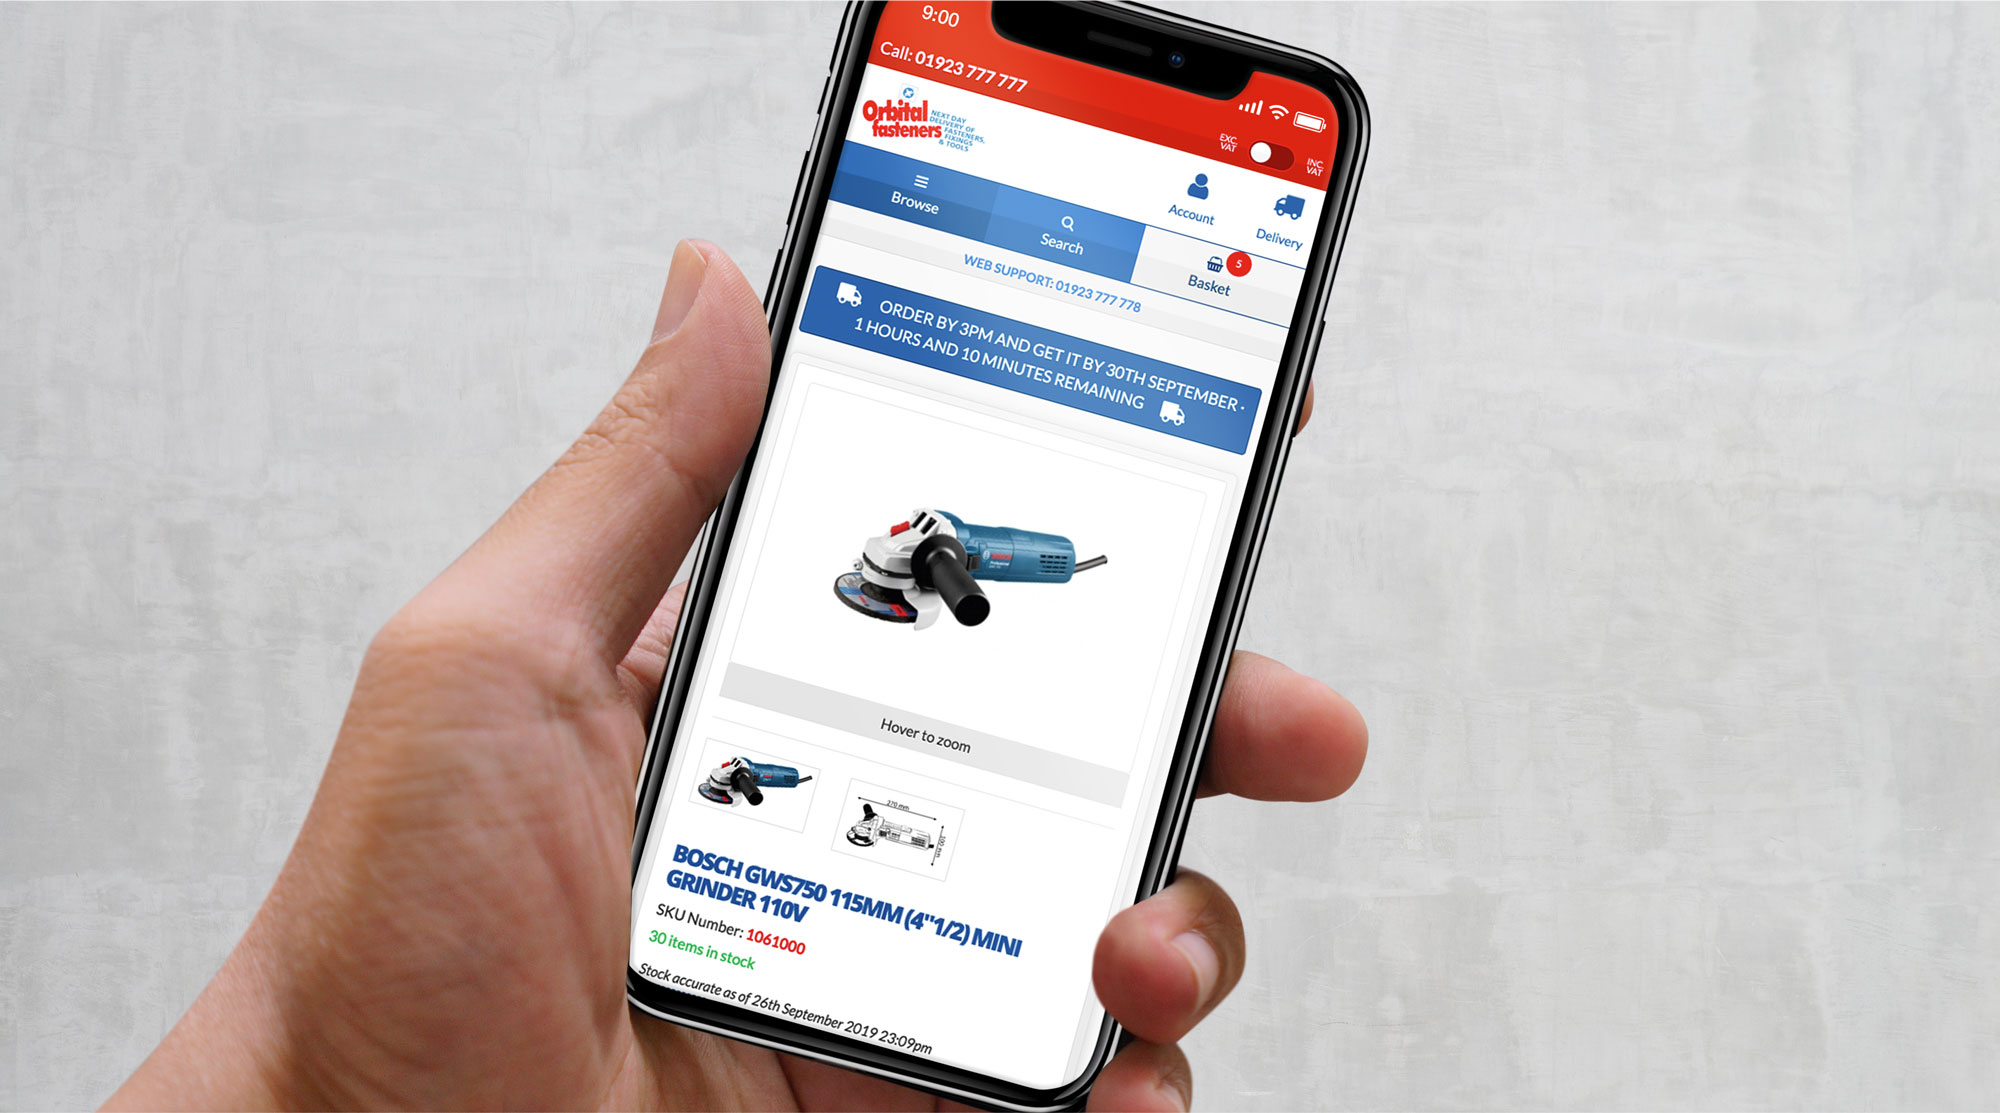 Orbital Fasteners website on a mobile